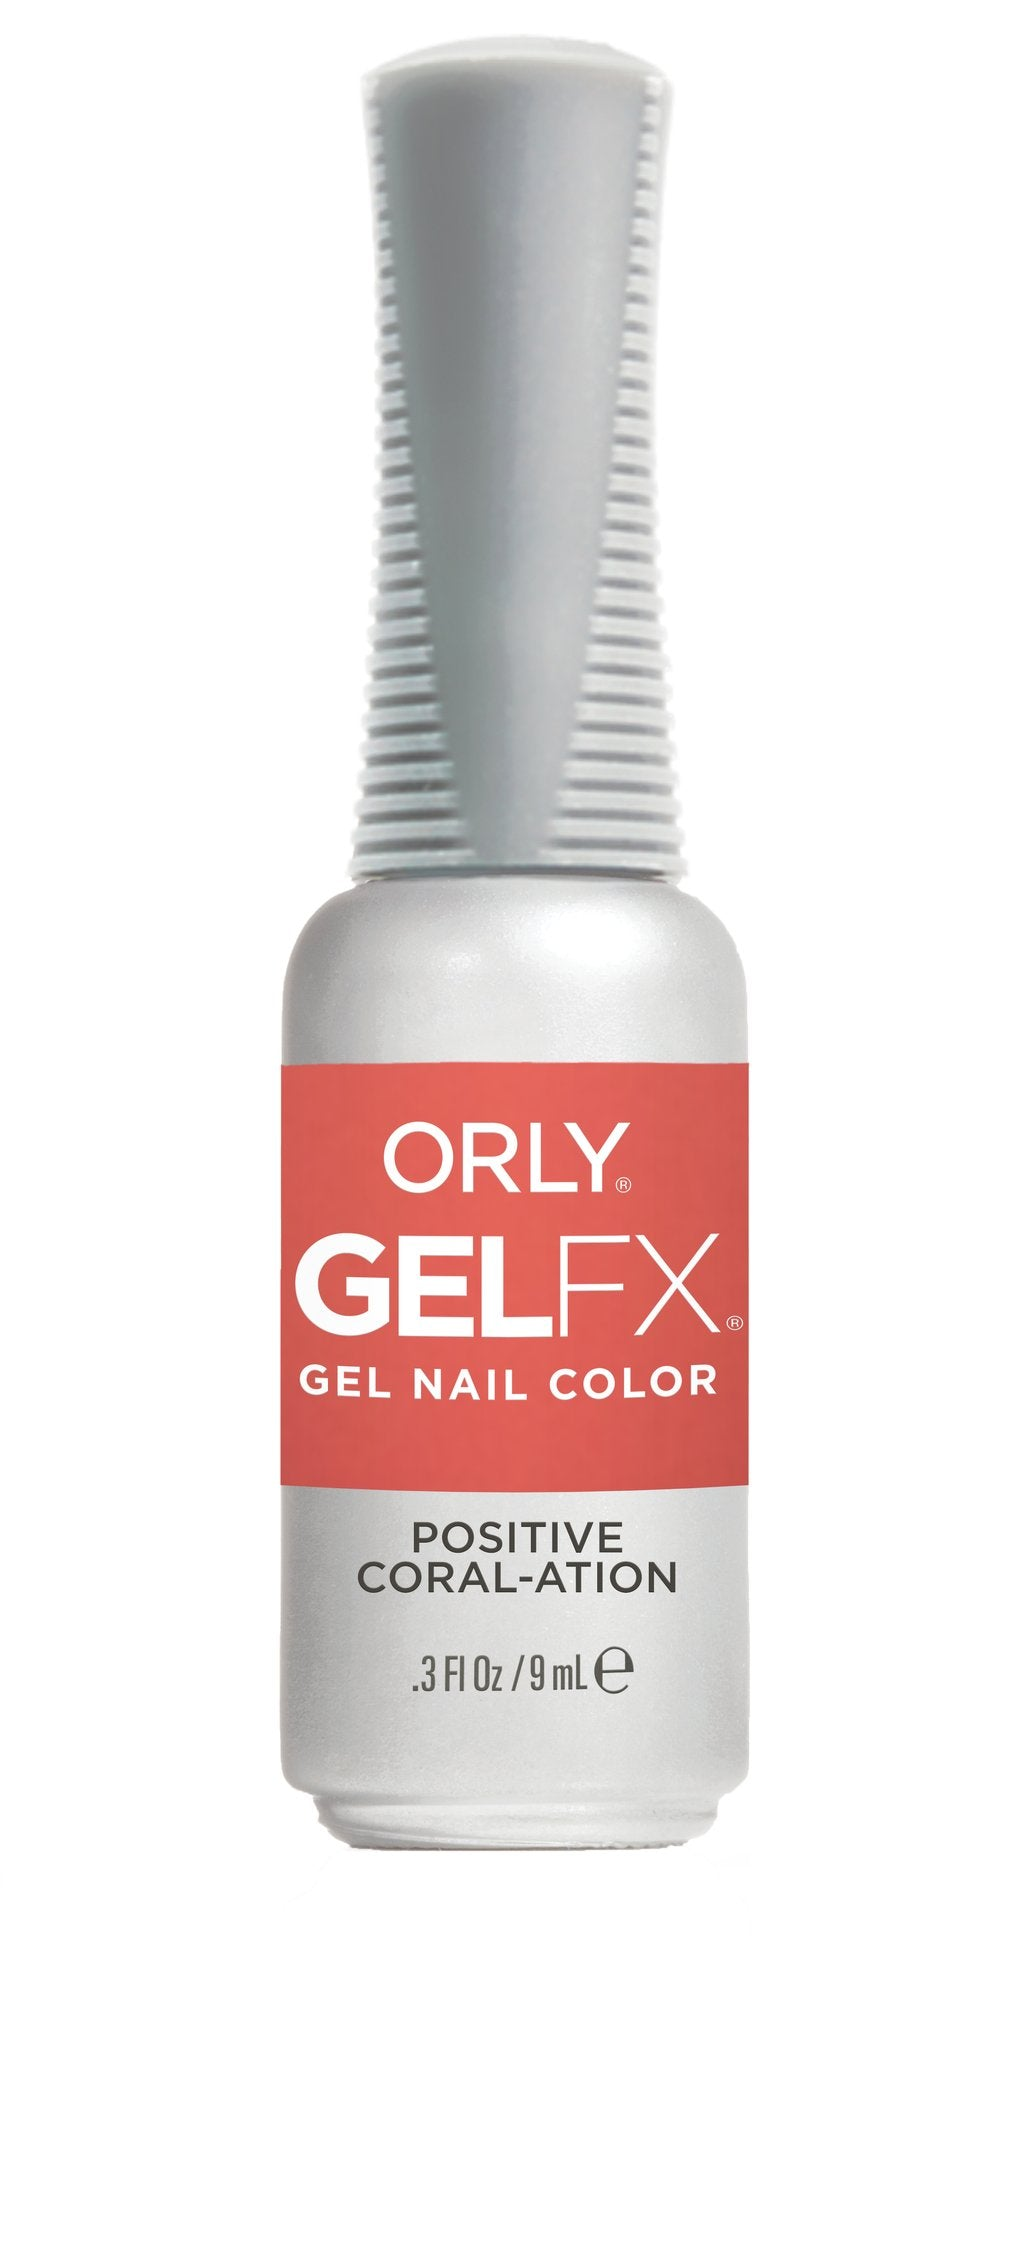 Orly GelFX Positive Coral-ation .3 fl oz 3000014